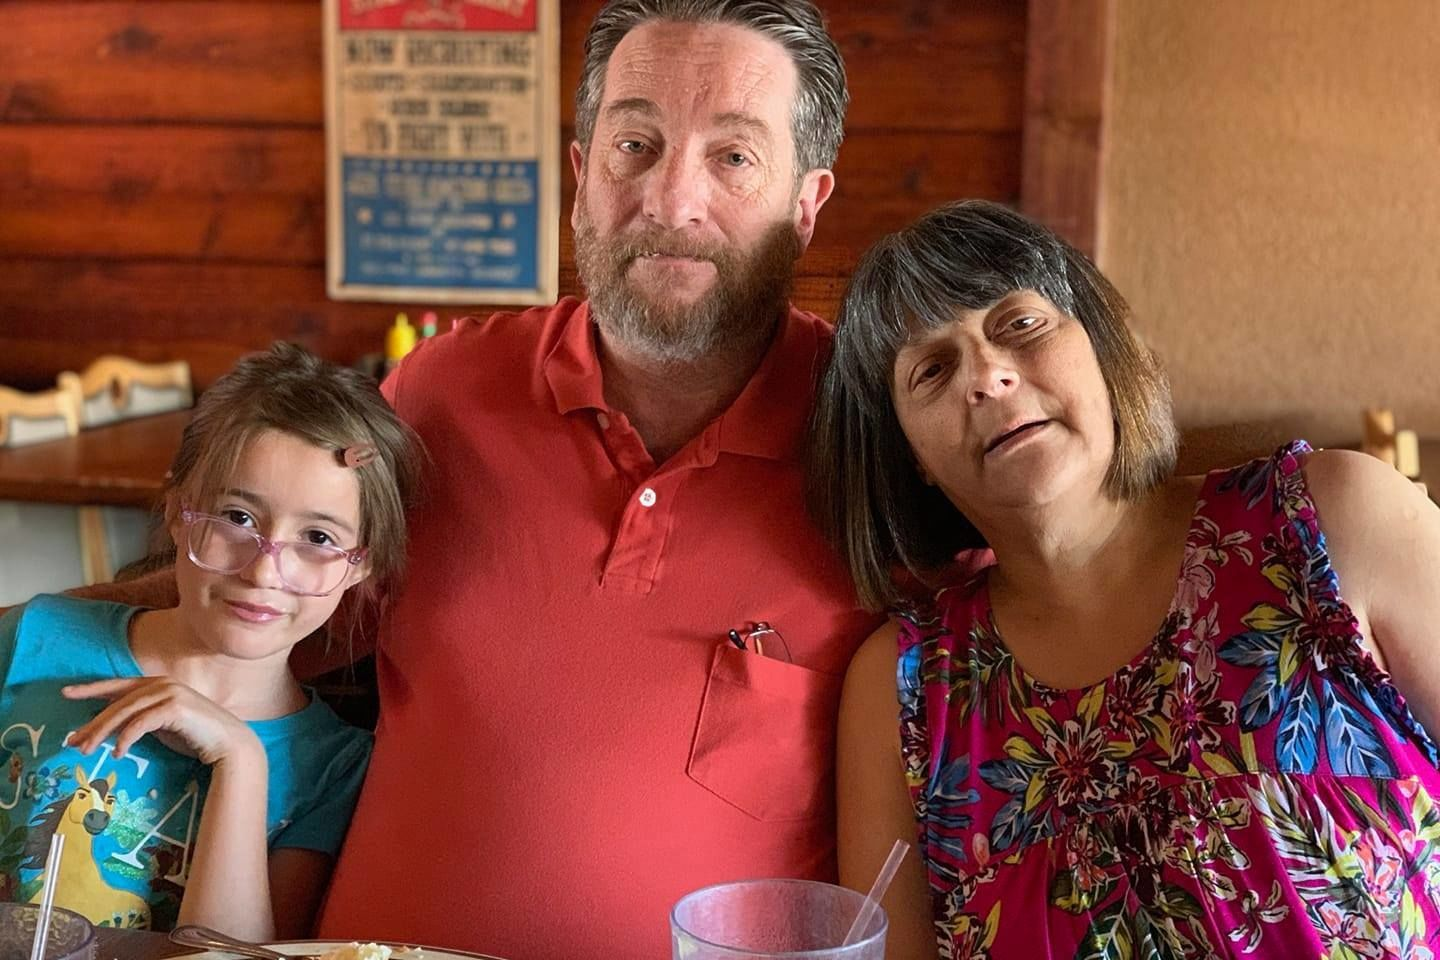 Hero Grandpa Dies Protecting Wife and Granddaughter in El Paso Shooting: 'He Had a Big Heart'